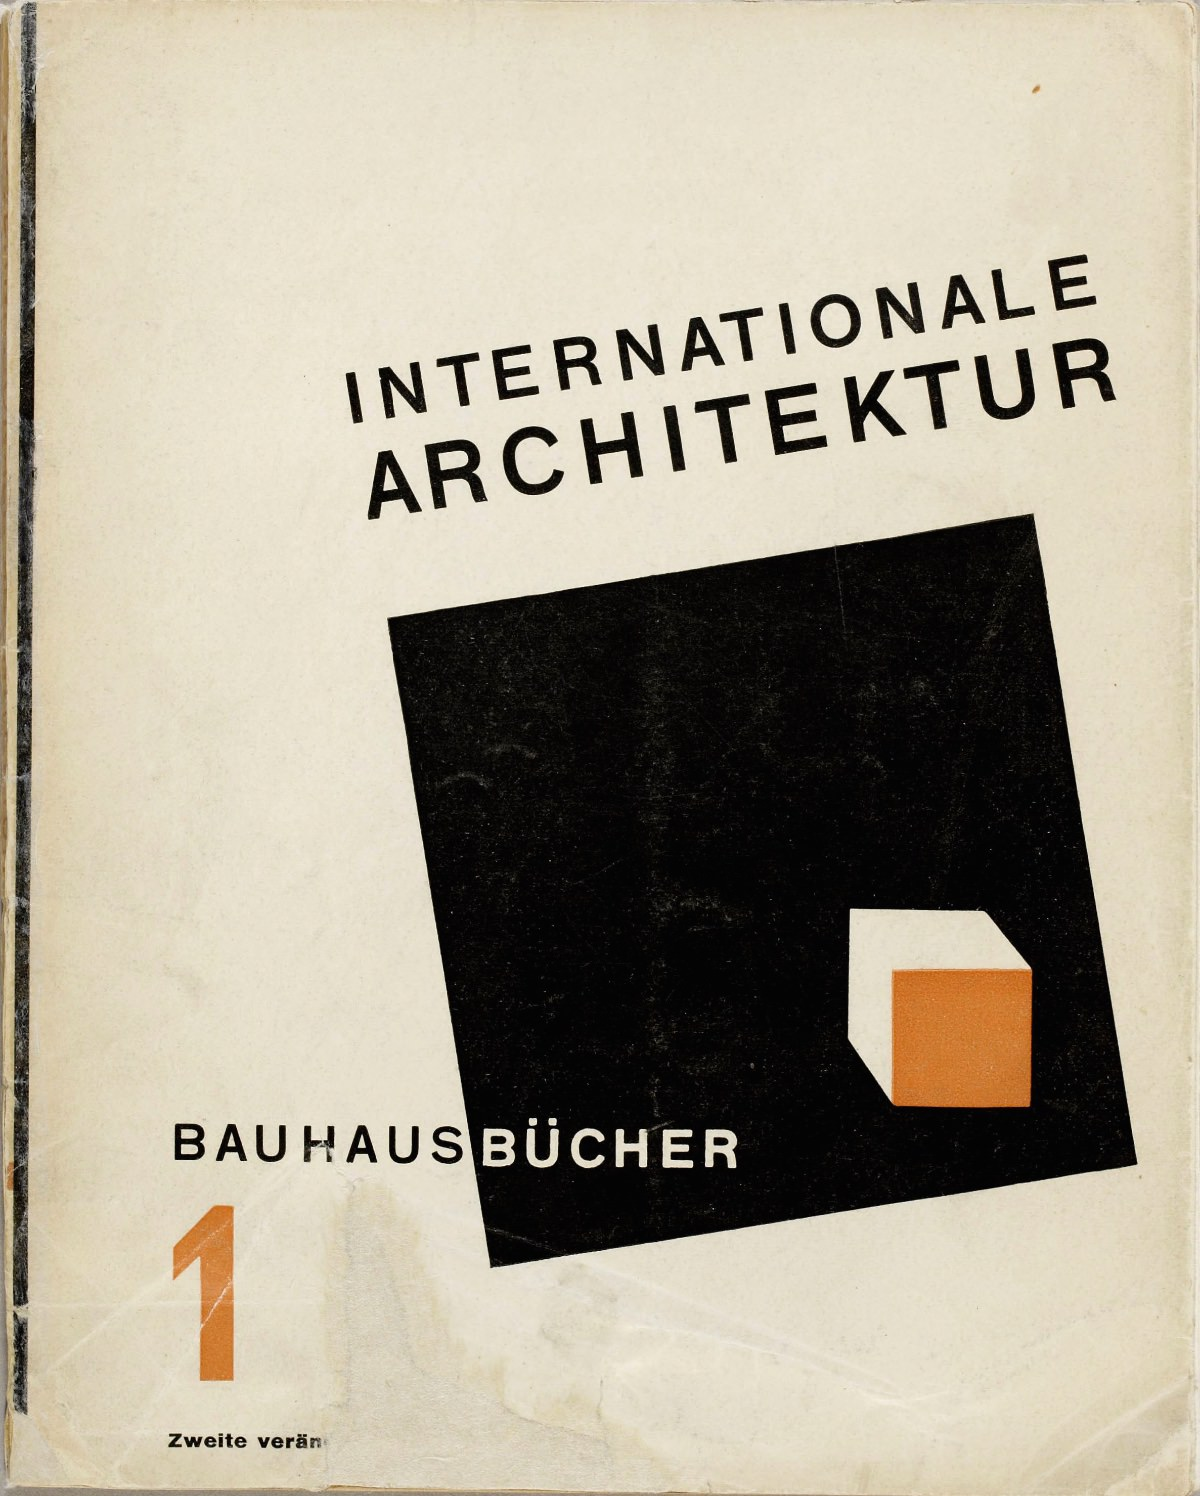 bauhausbücher-1-walter-gropius-internationale-architektur-1925